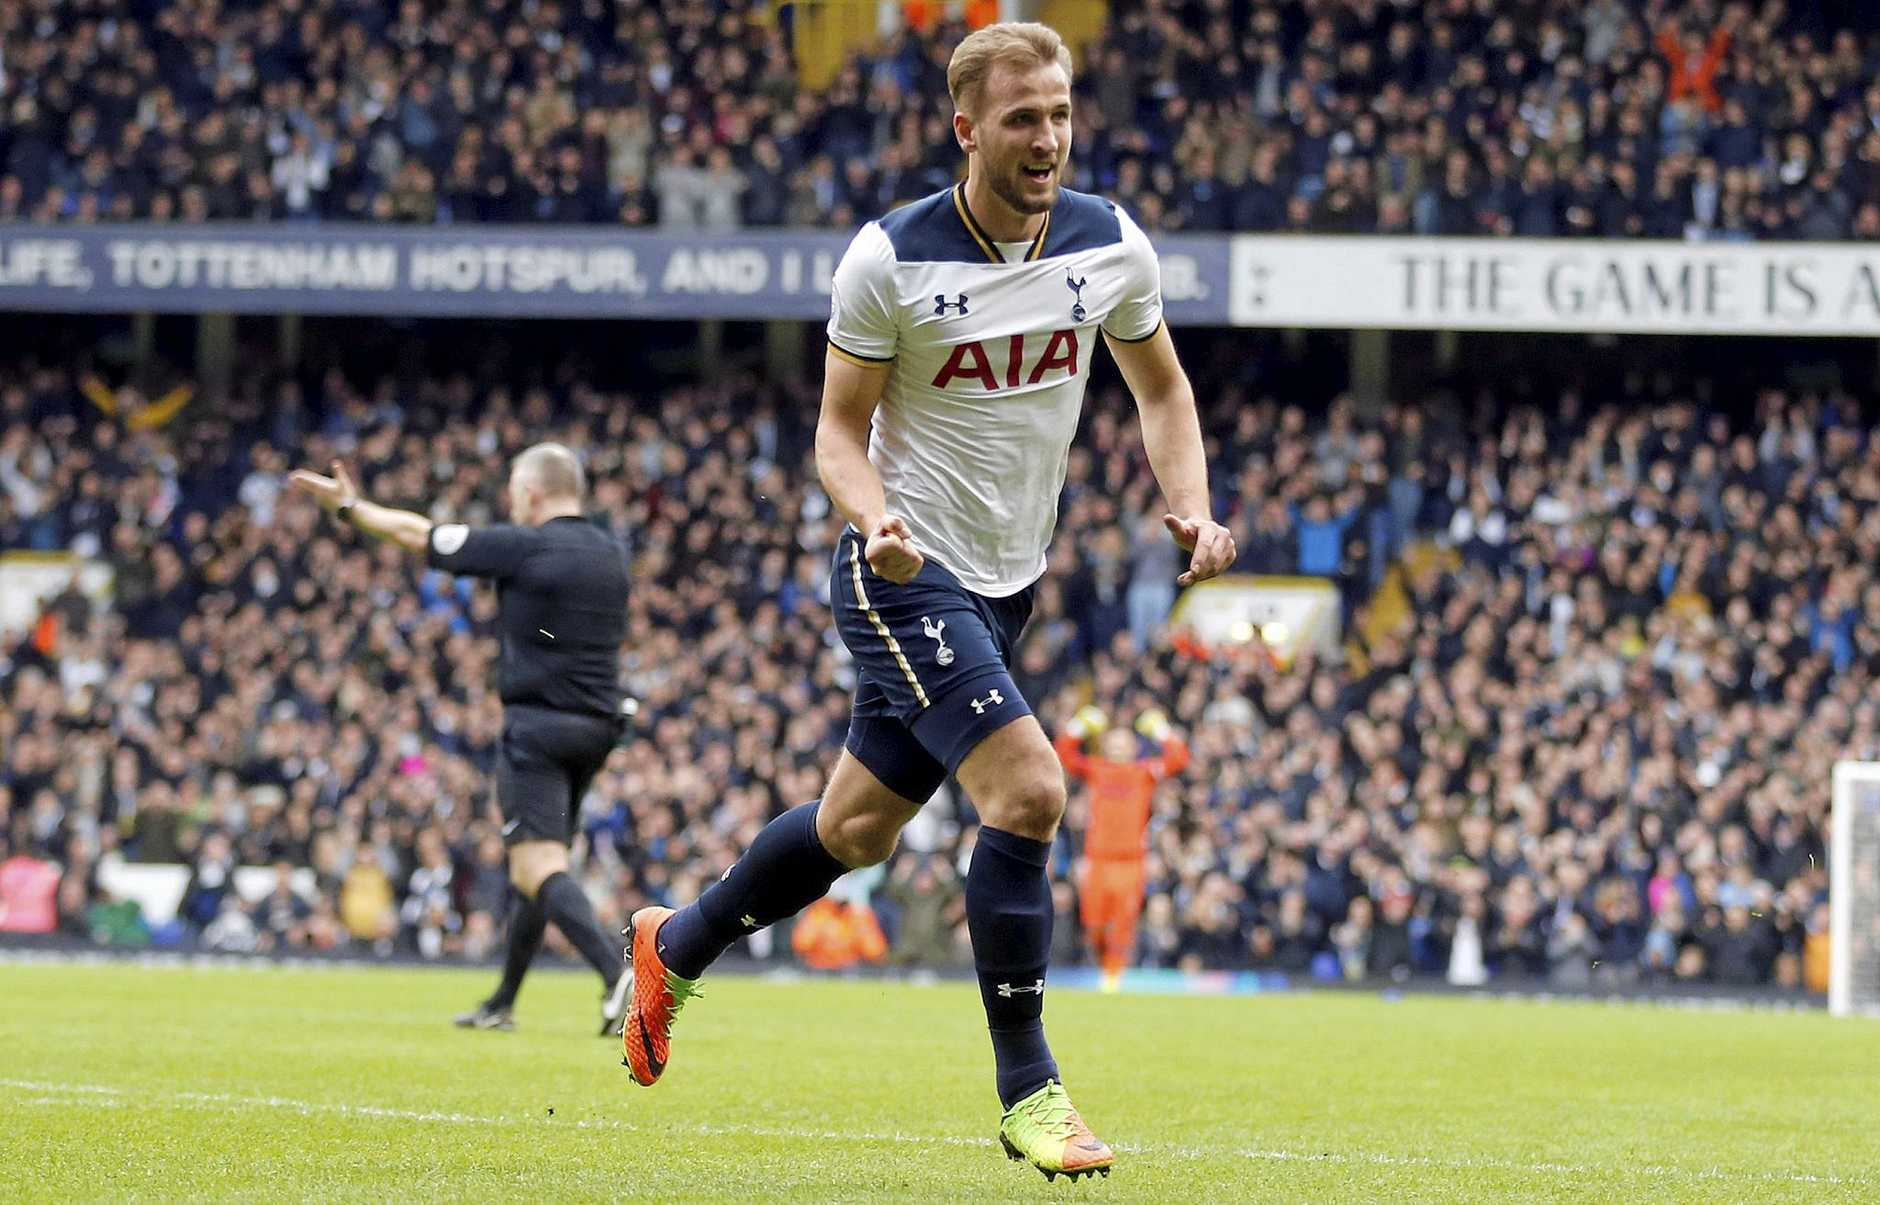 Tottenham Hotspur's Harry Kane celebrates after scoring his side's second goal against Stoke.